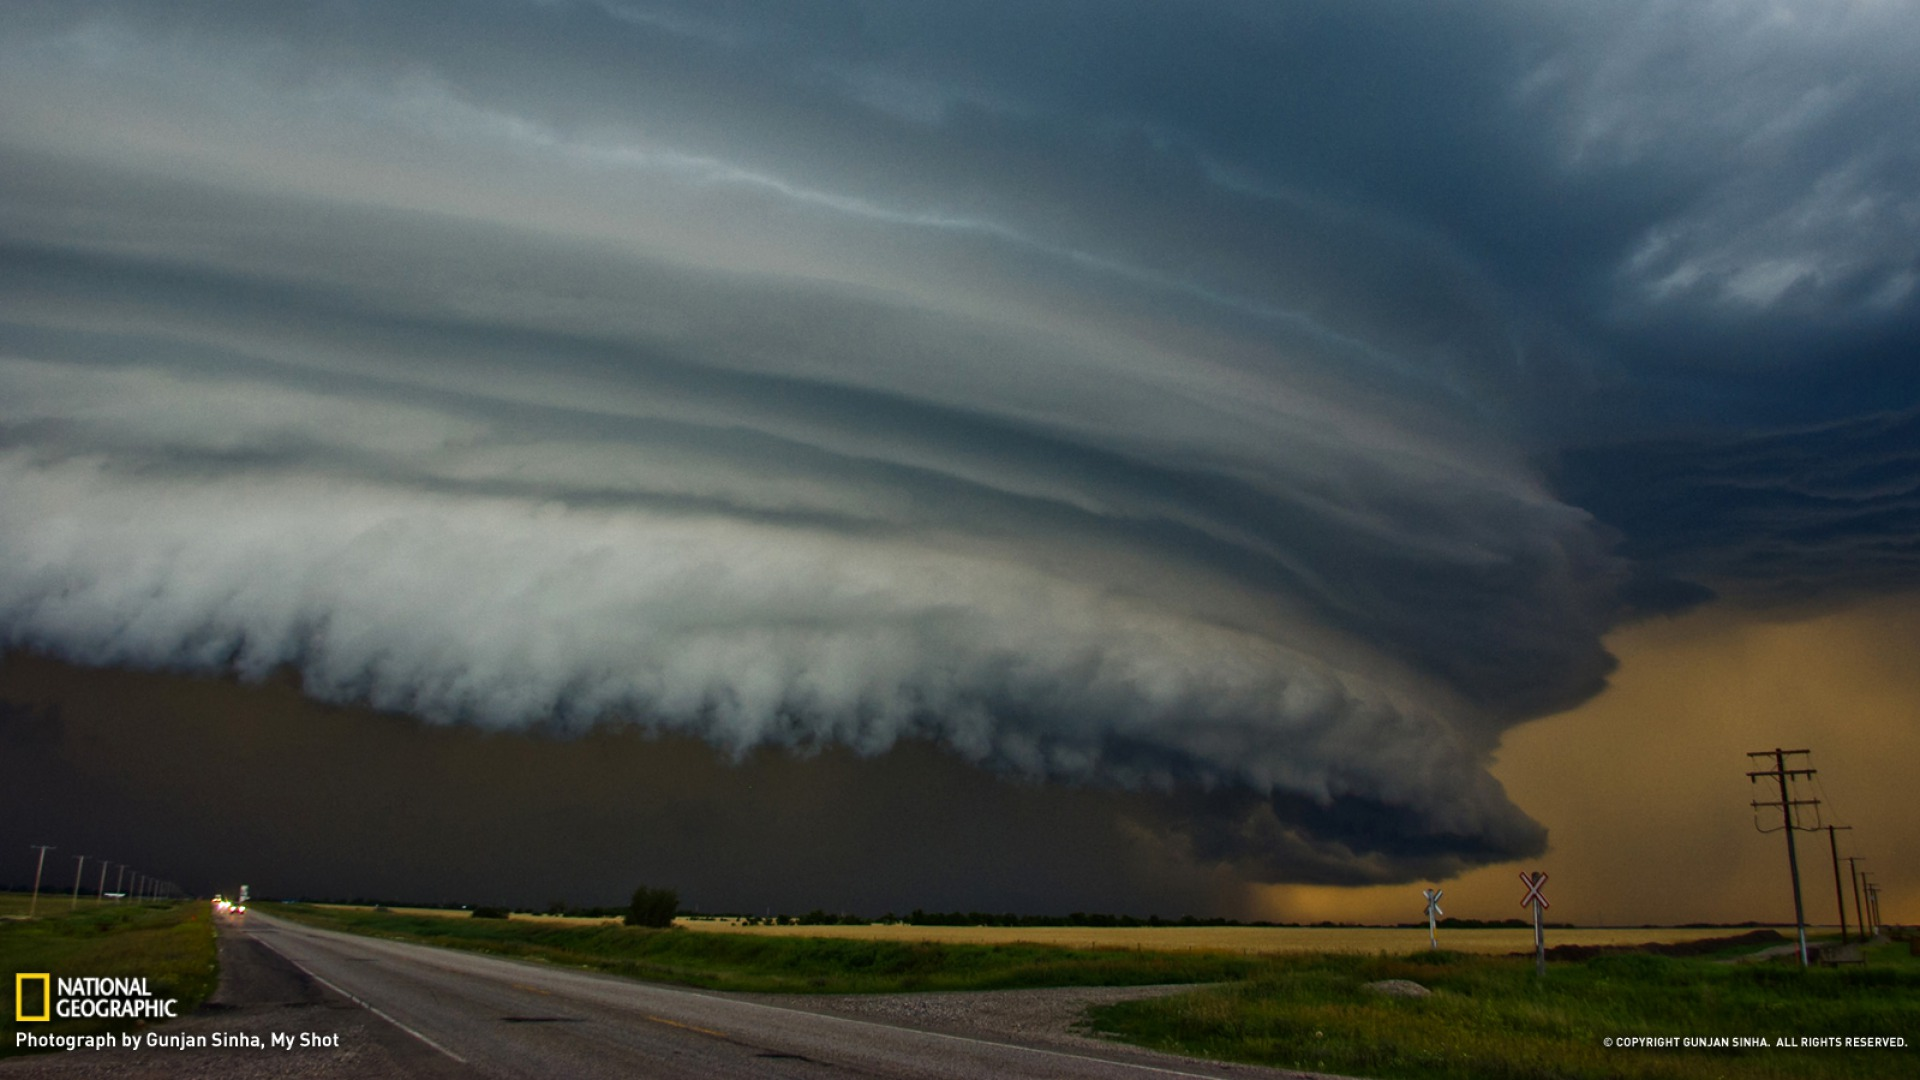 Widest Tornado In The World Images Pictures   Becuo 1920x1080